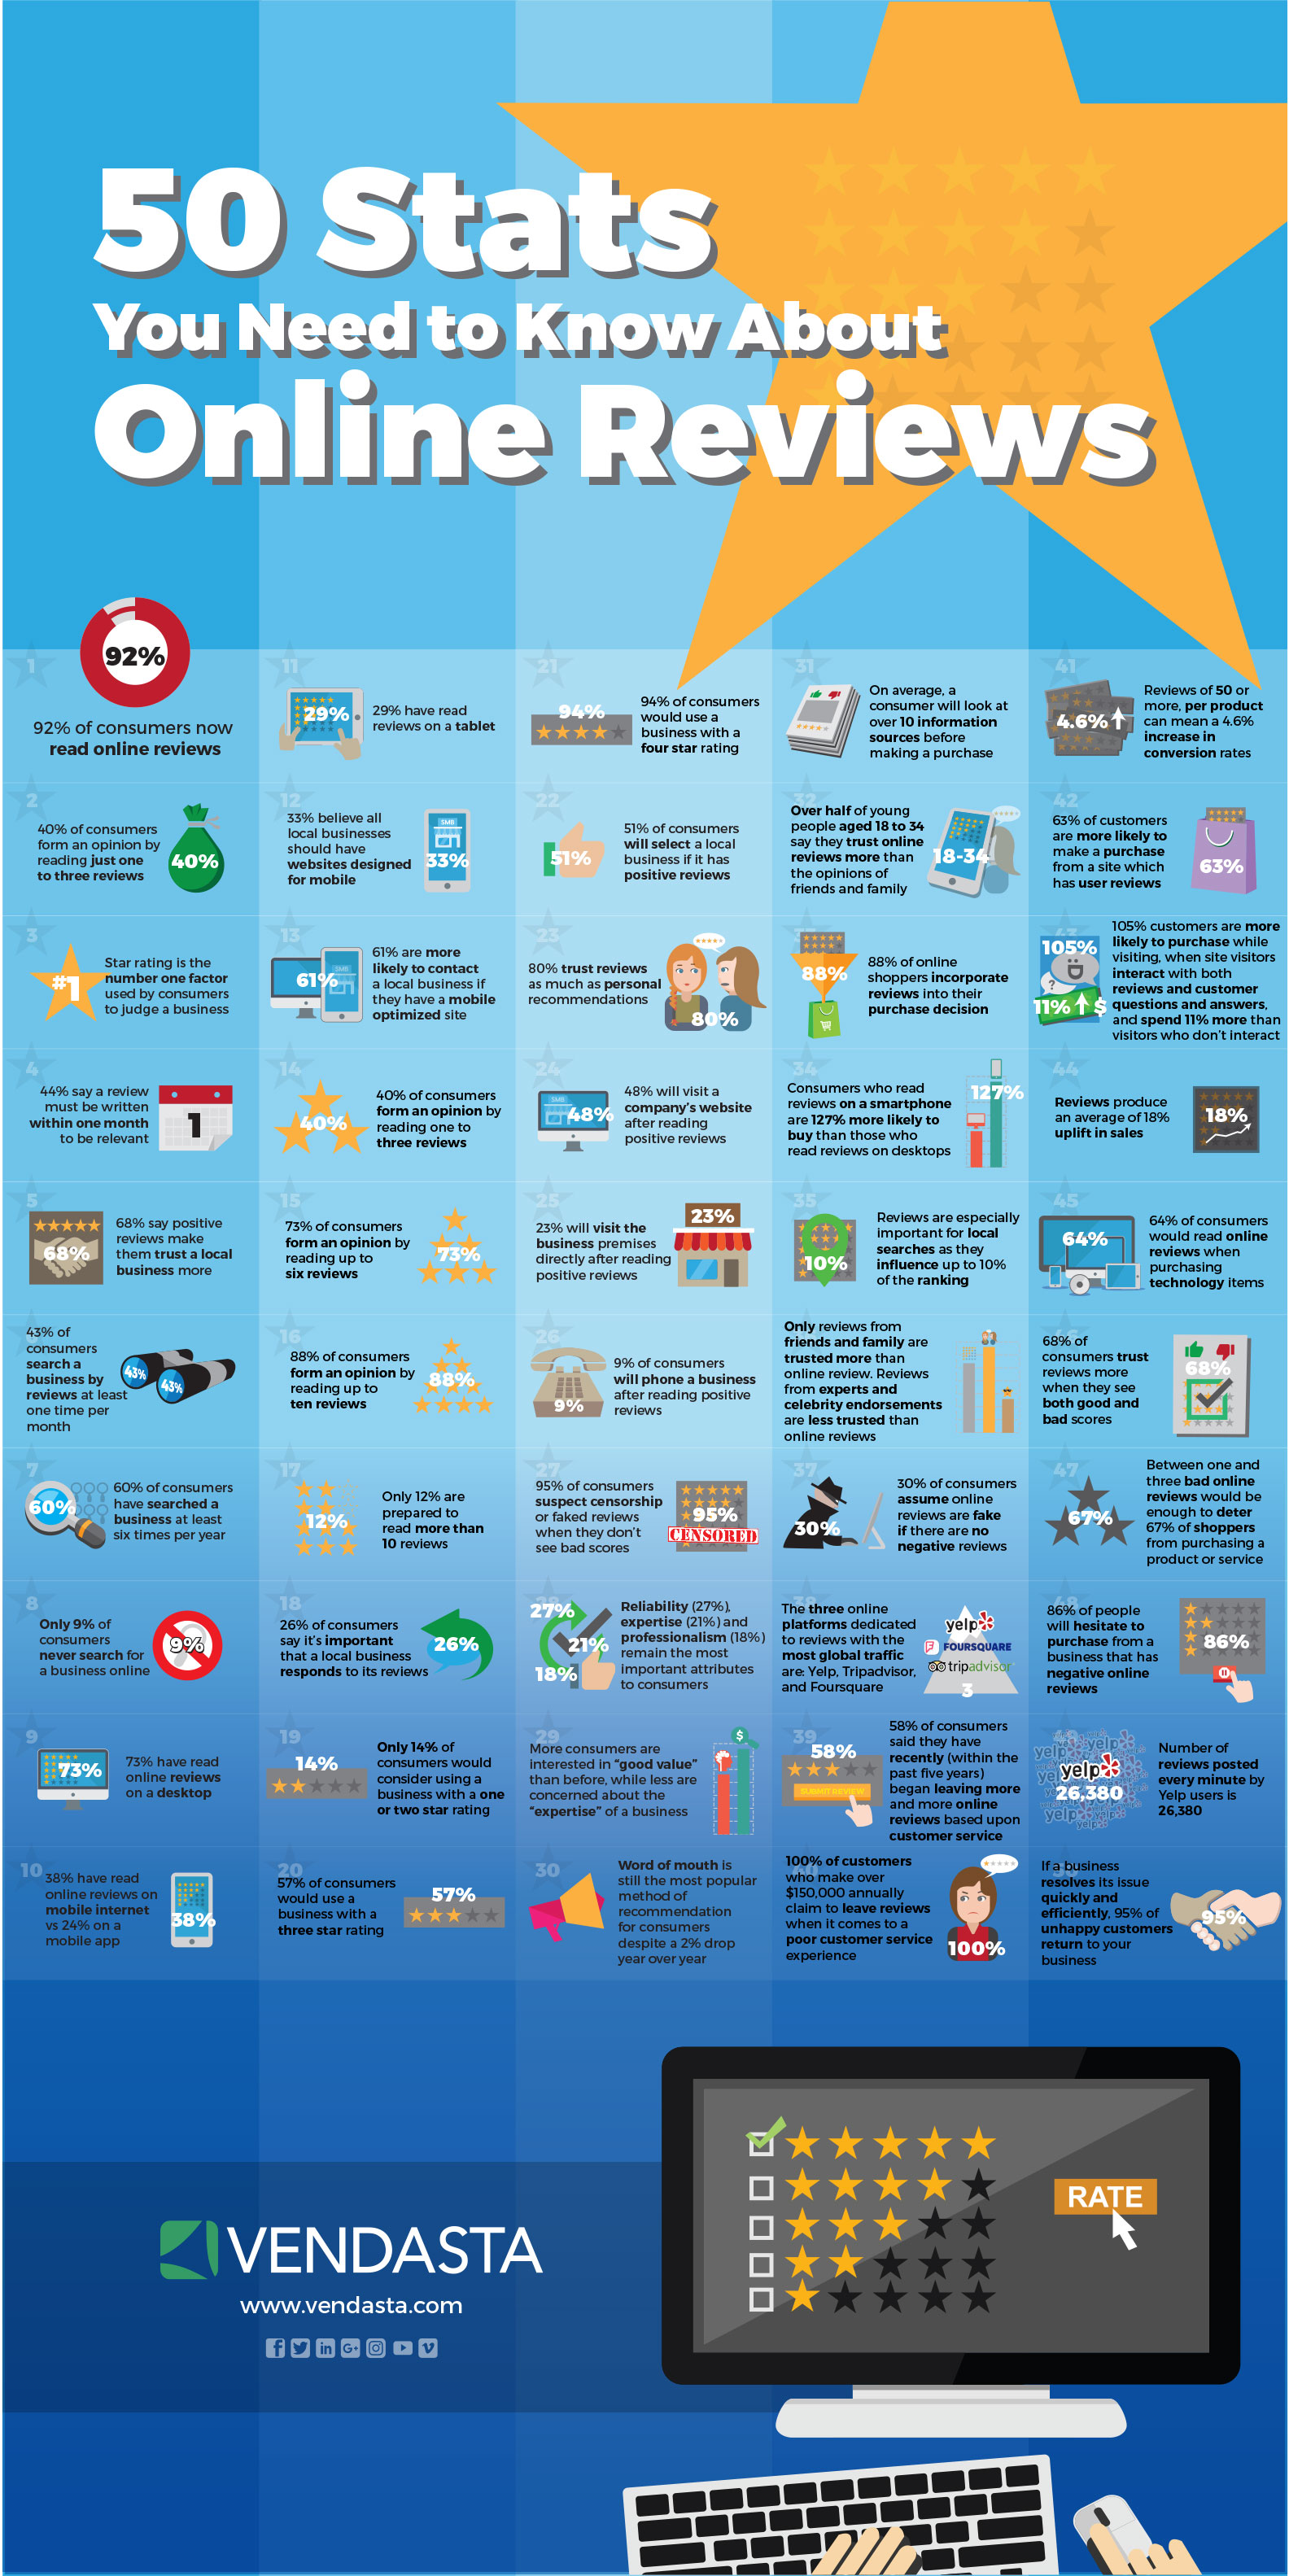 50-Stats-You-Need-to-Know-About-Online-Reviews.jpg